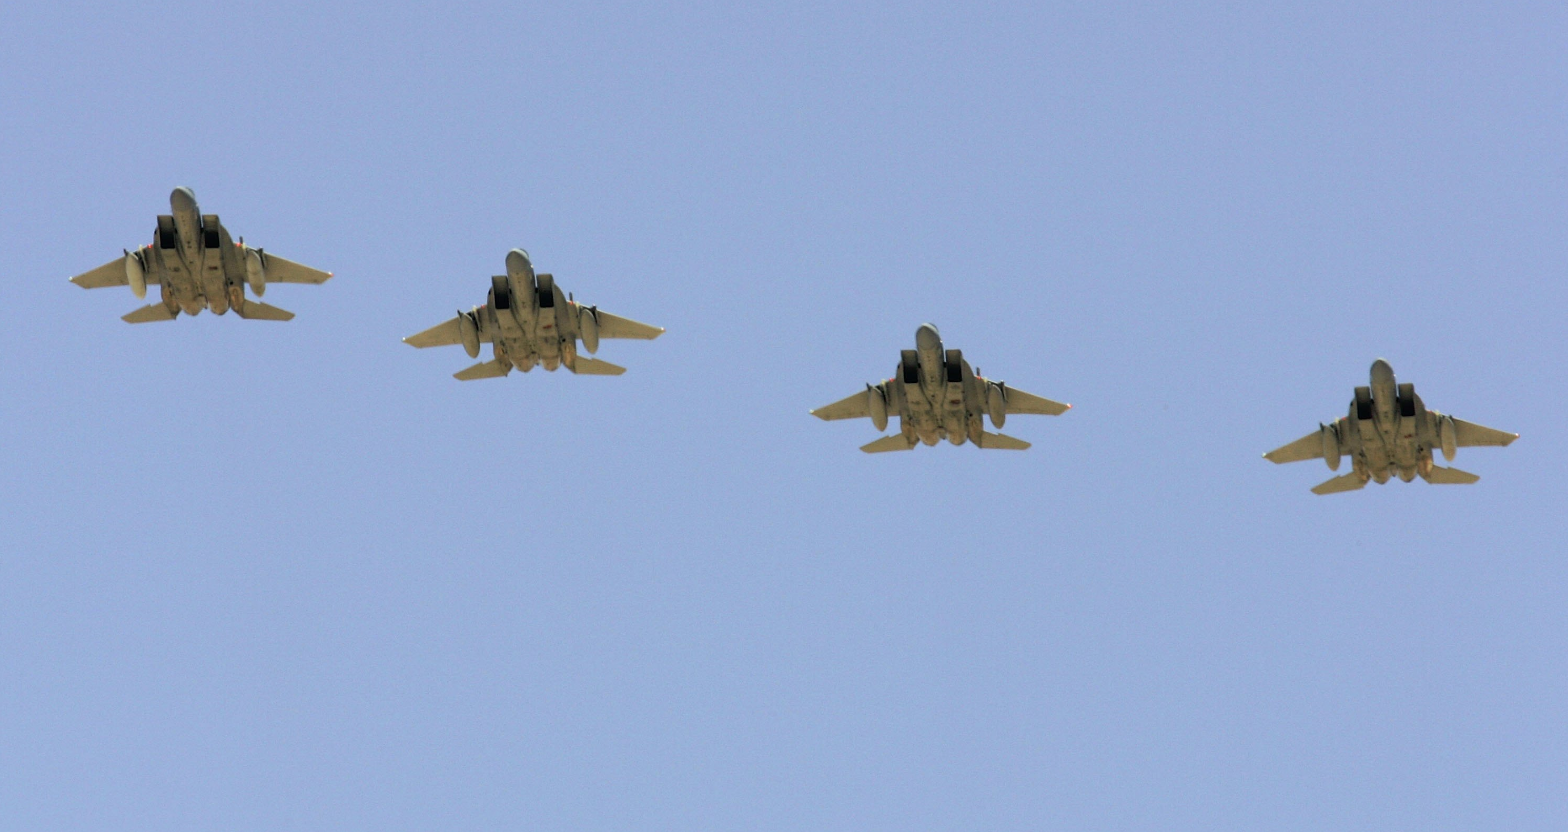 Four U.S. Air Force F-15 aircraft fly over Nellis Air Force Base  in Las Vegas, Nevada in 2006. (Ethan Miller/Getty Images)